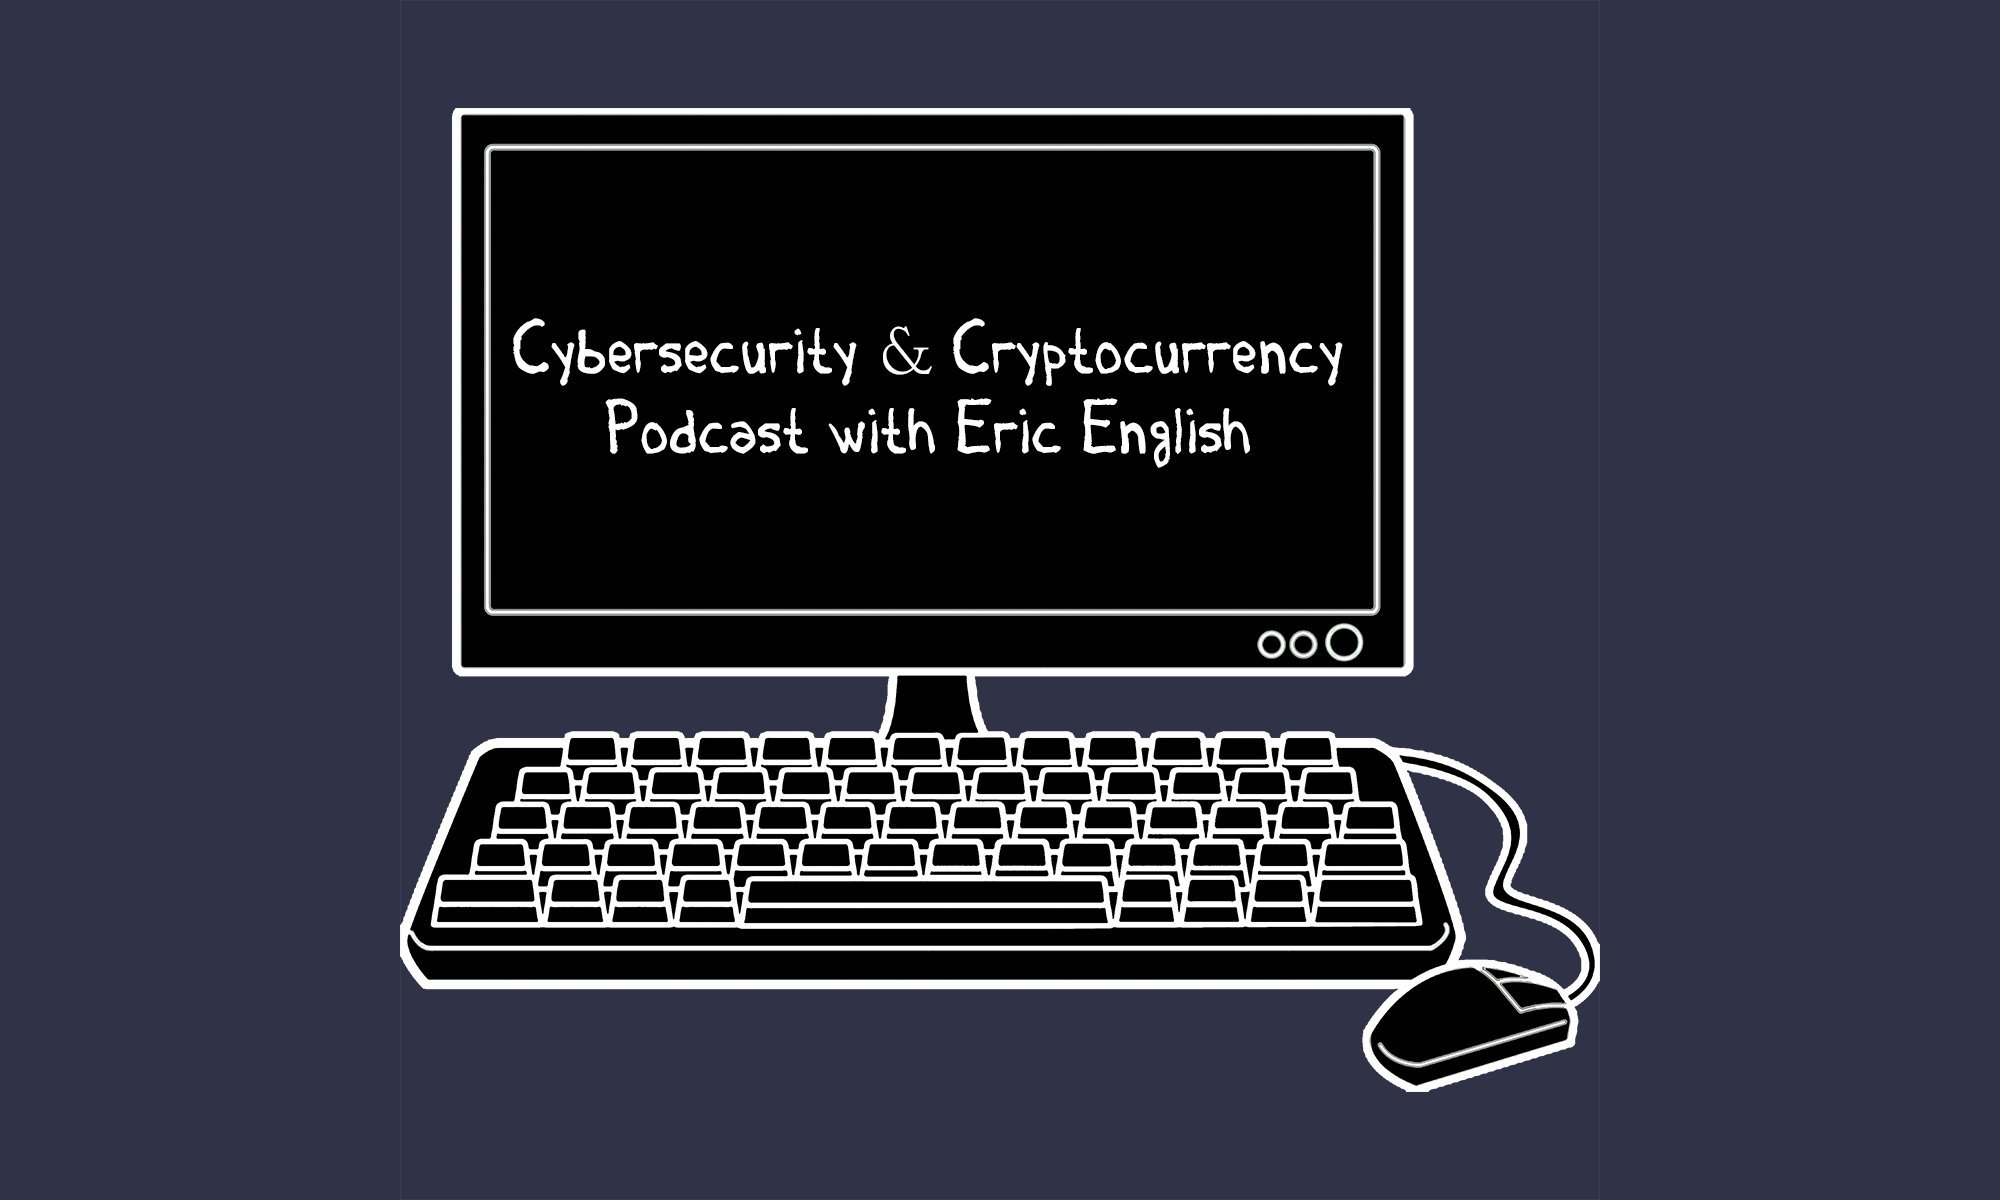 Cybersecurity & Cryptocurrency Podcast